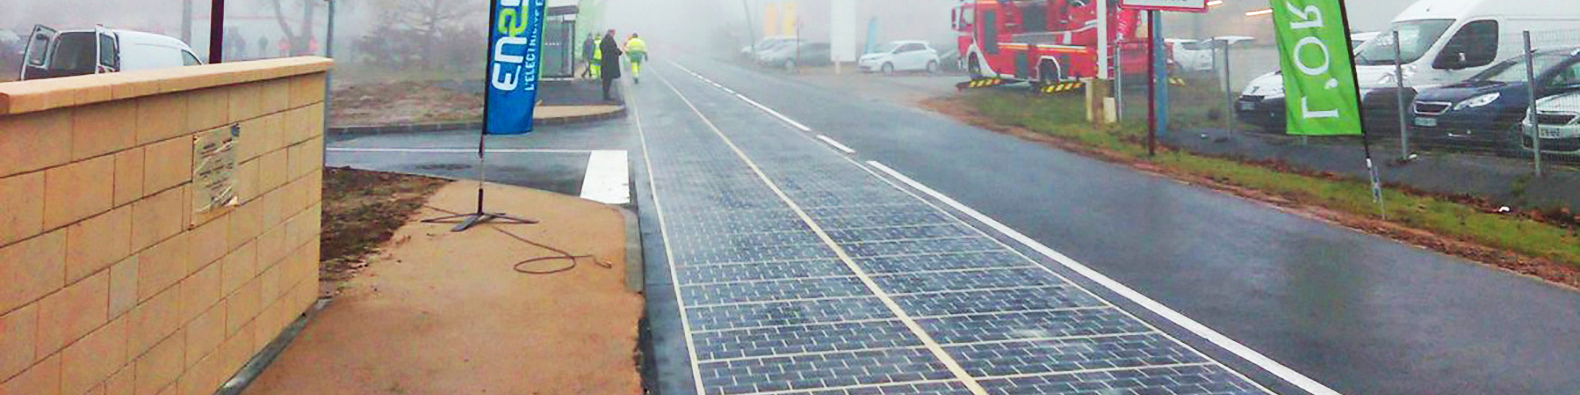 France officially opens world's first solar panel road